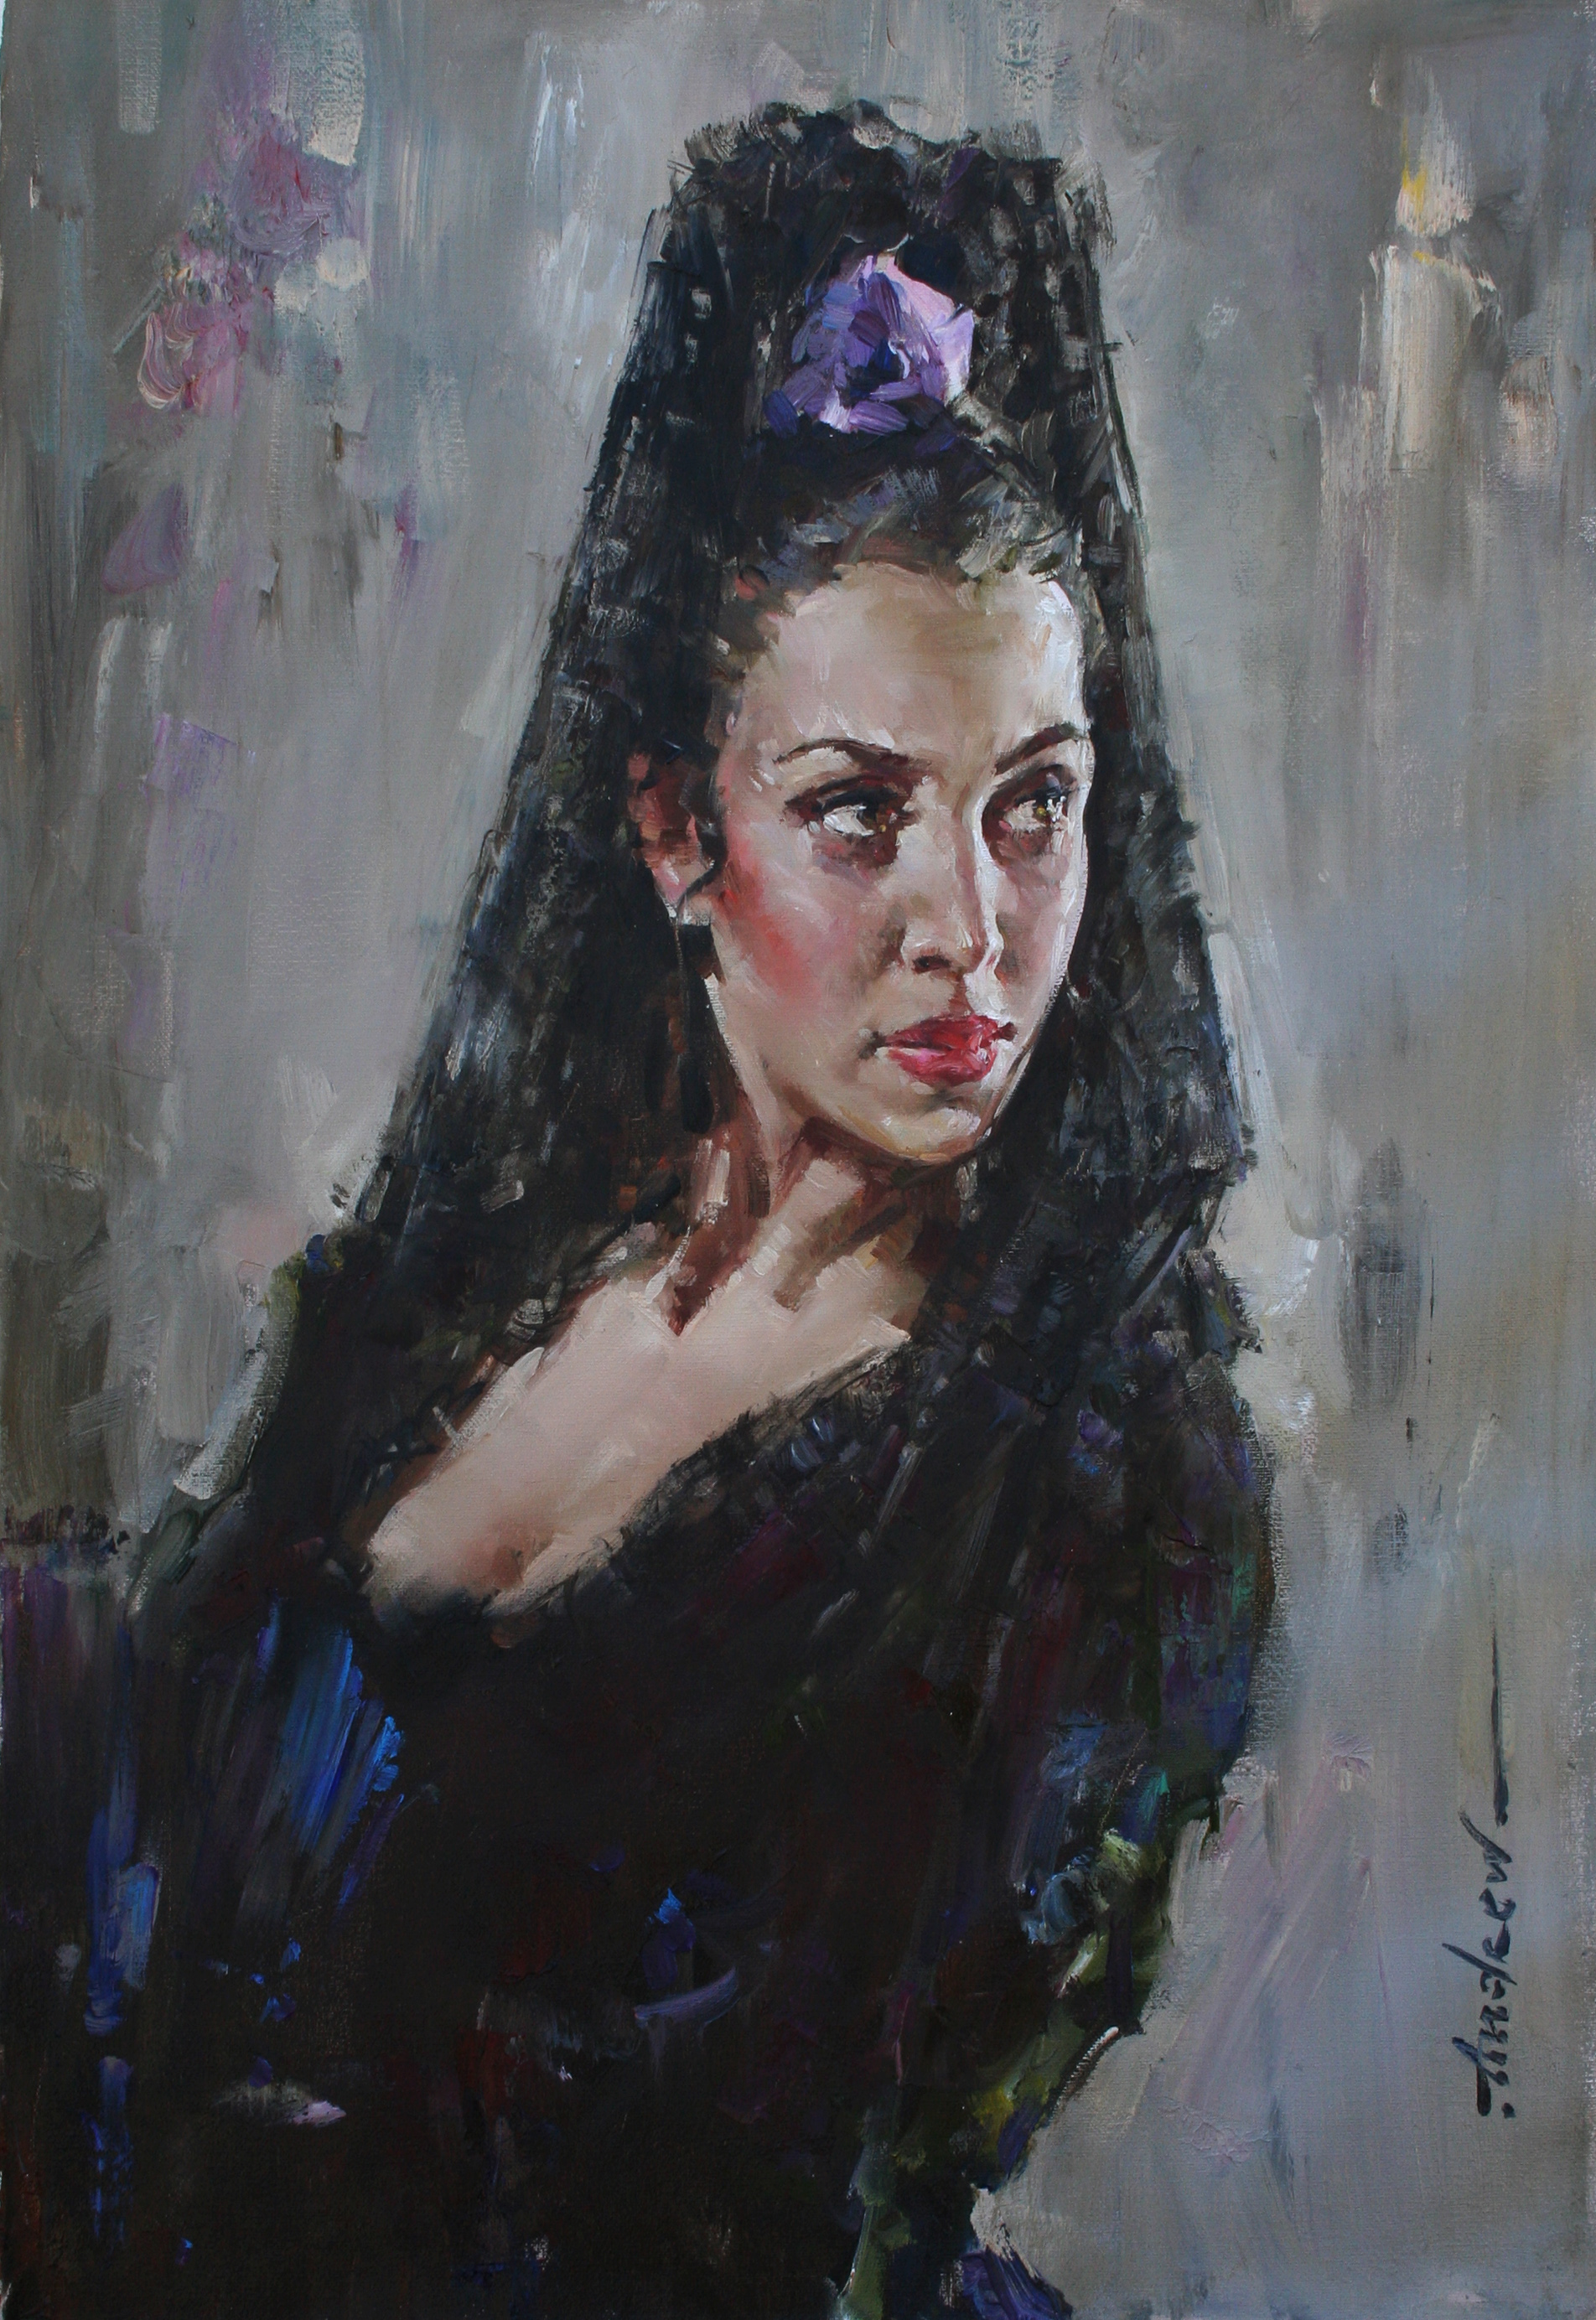 Andrew Atroshenko - Karmen - Oil on Canvas Original Painting